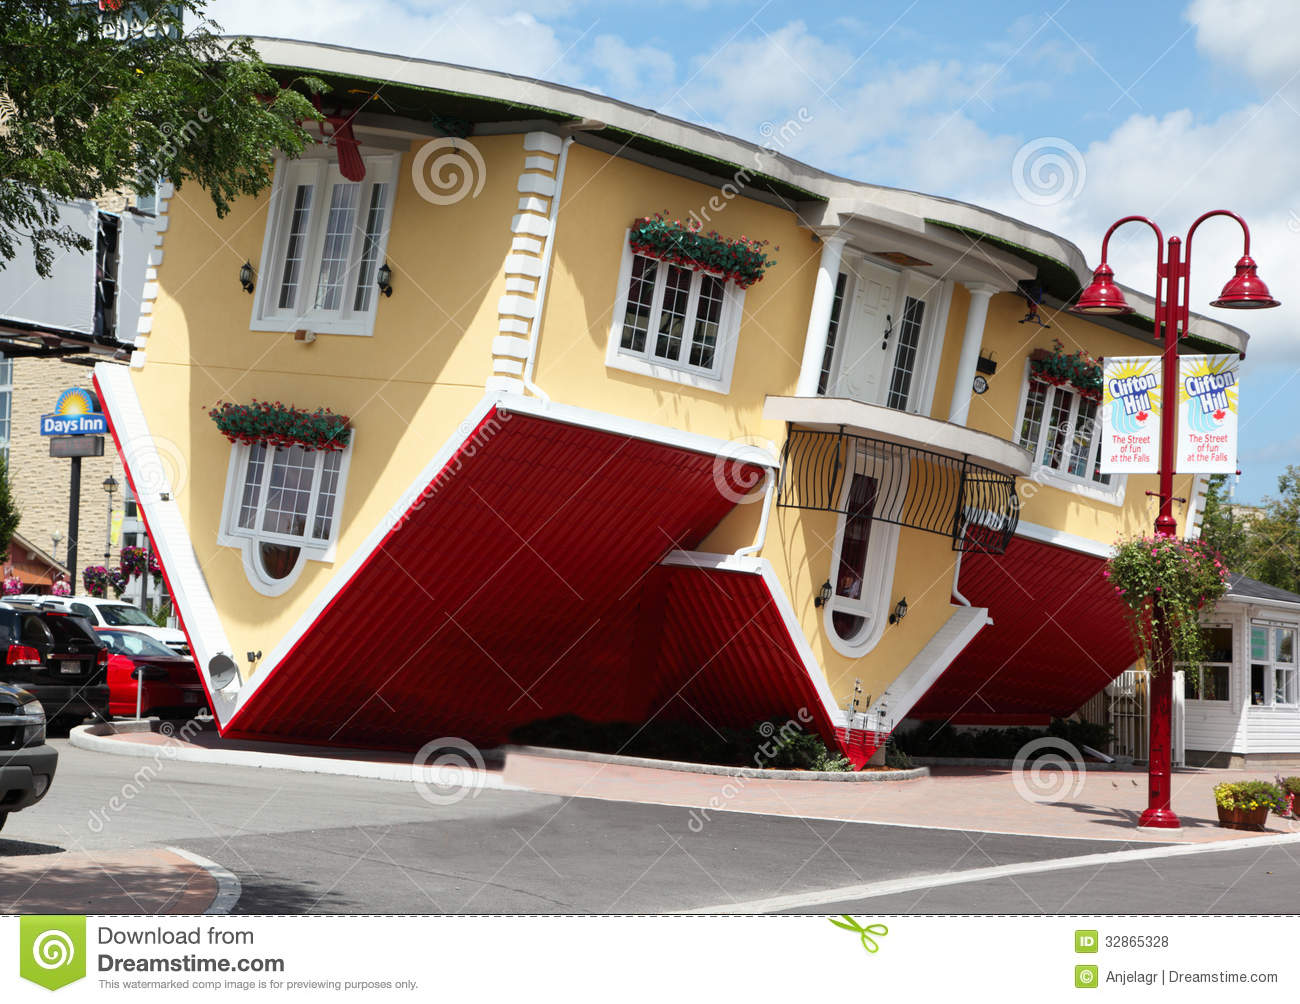 Niagara falls canada aug 4 attraction upside down house on clifton hill in niagara falls - Huis modena ...